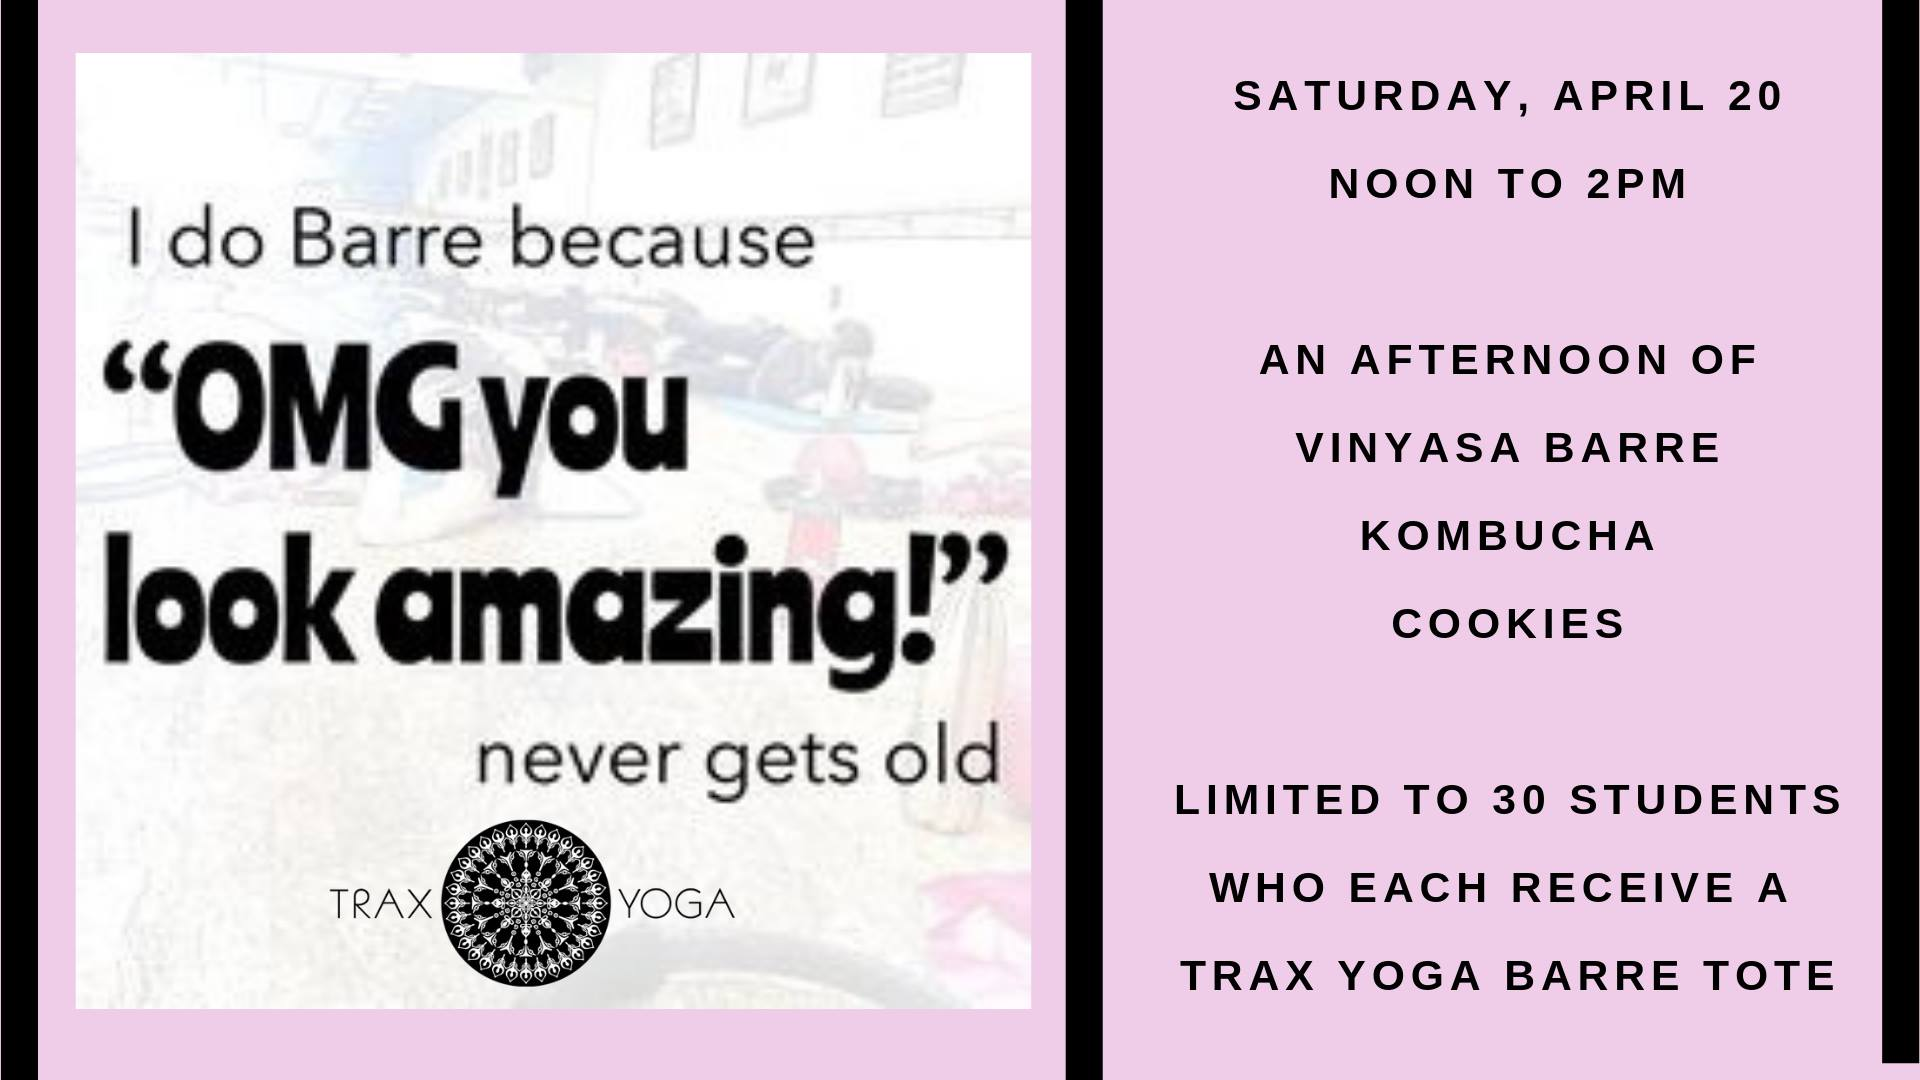 Vinyasa Barre Party @ Trax Yoga | Fairbanks | Alaska | United States